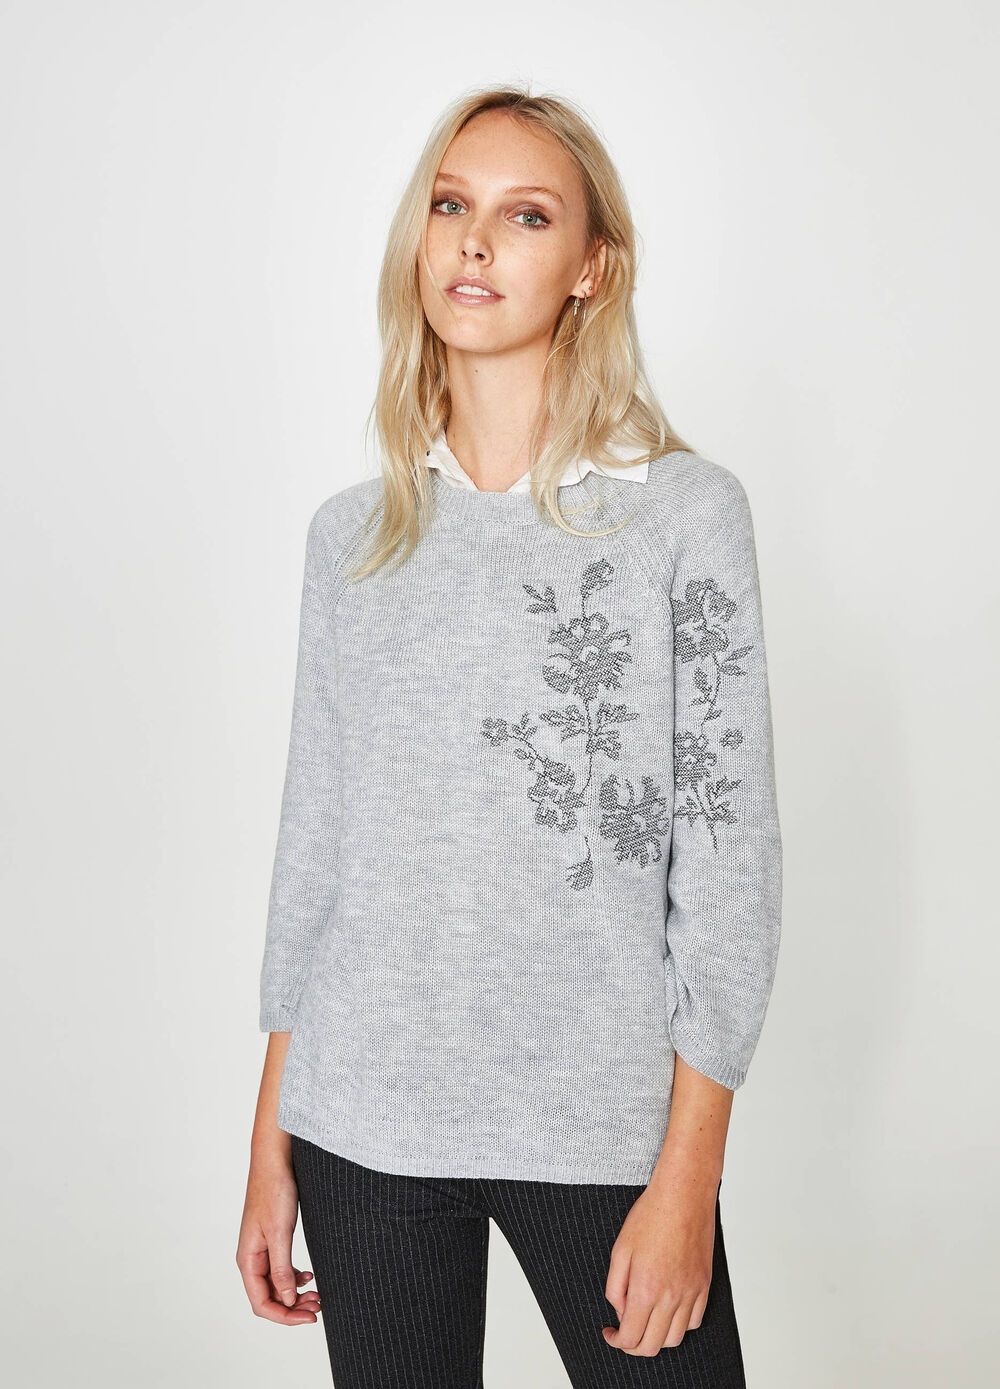 Crew neck pullover with floral embroidery